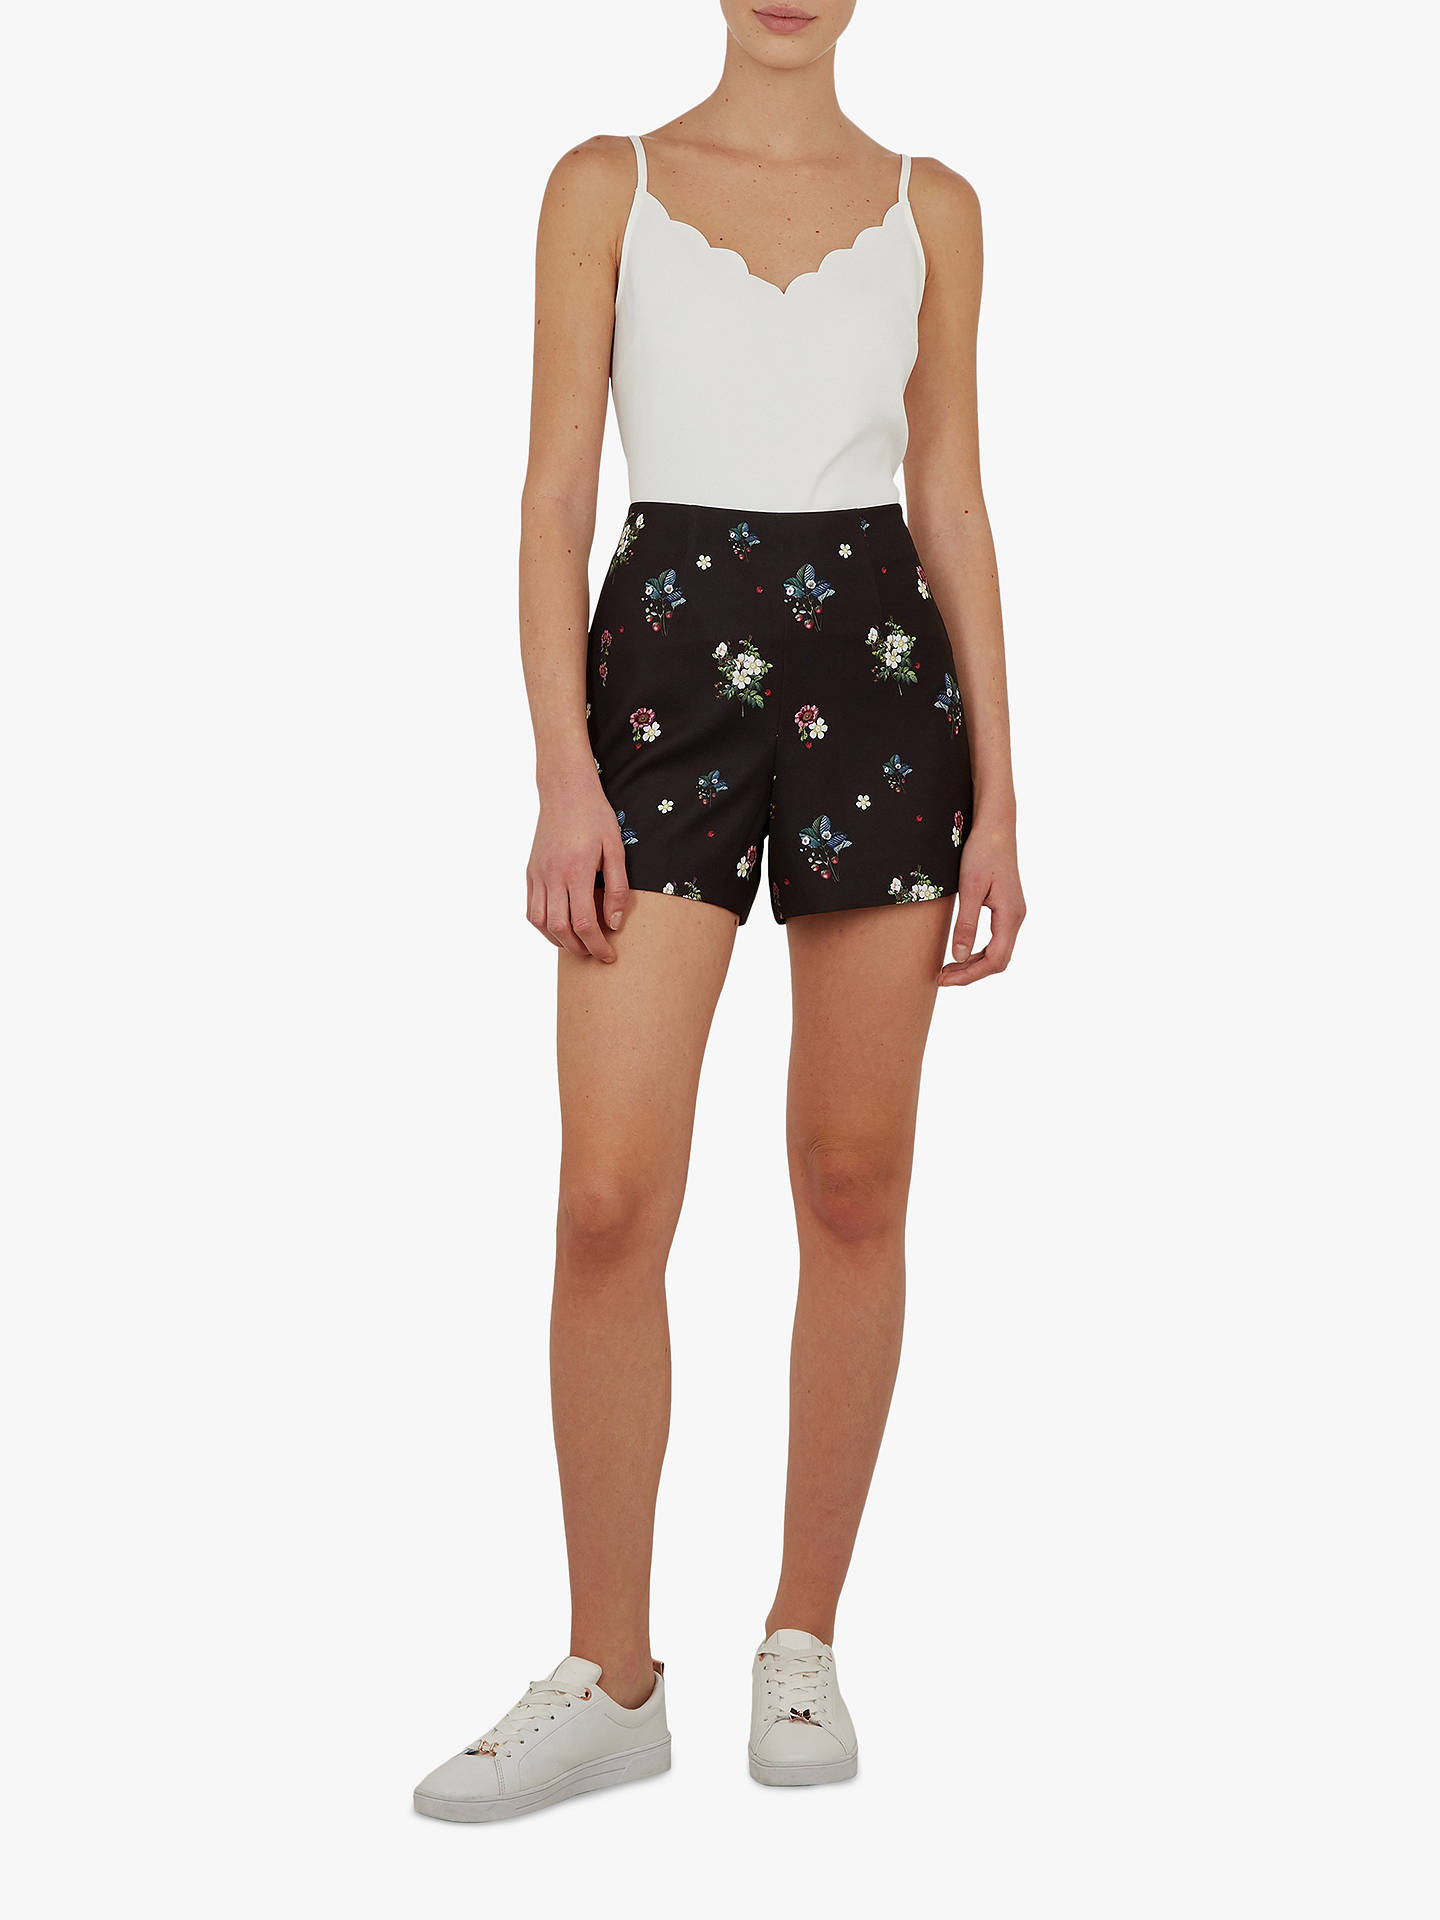 db0d0a9d7 ... Buy Ted Baker Naomii Floral Embroidery Shorts